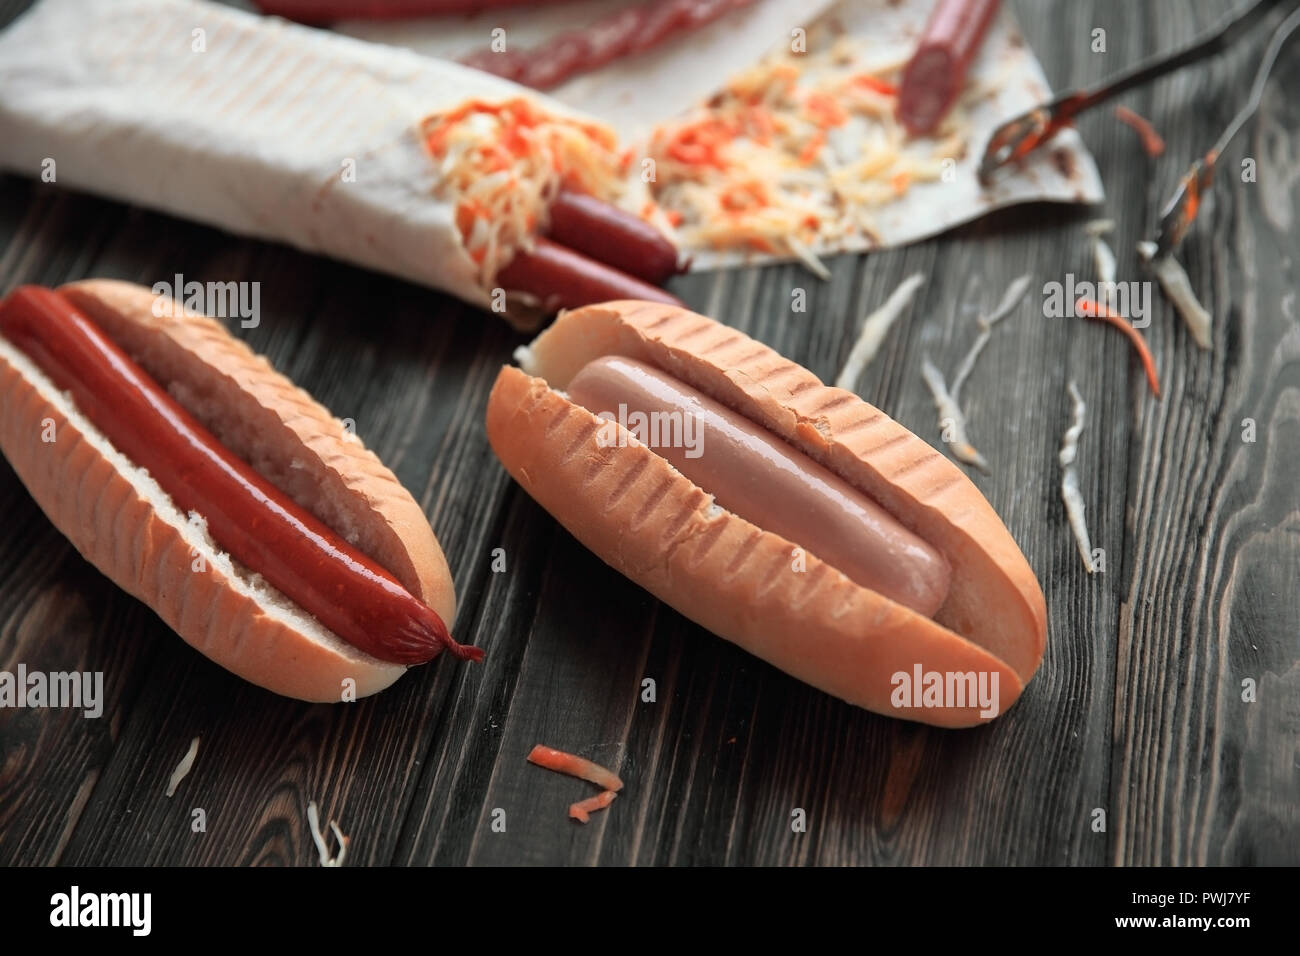 preparation of hot dogs with sausage.photo on a wooden backgroun - Stock Image